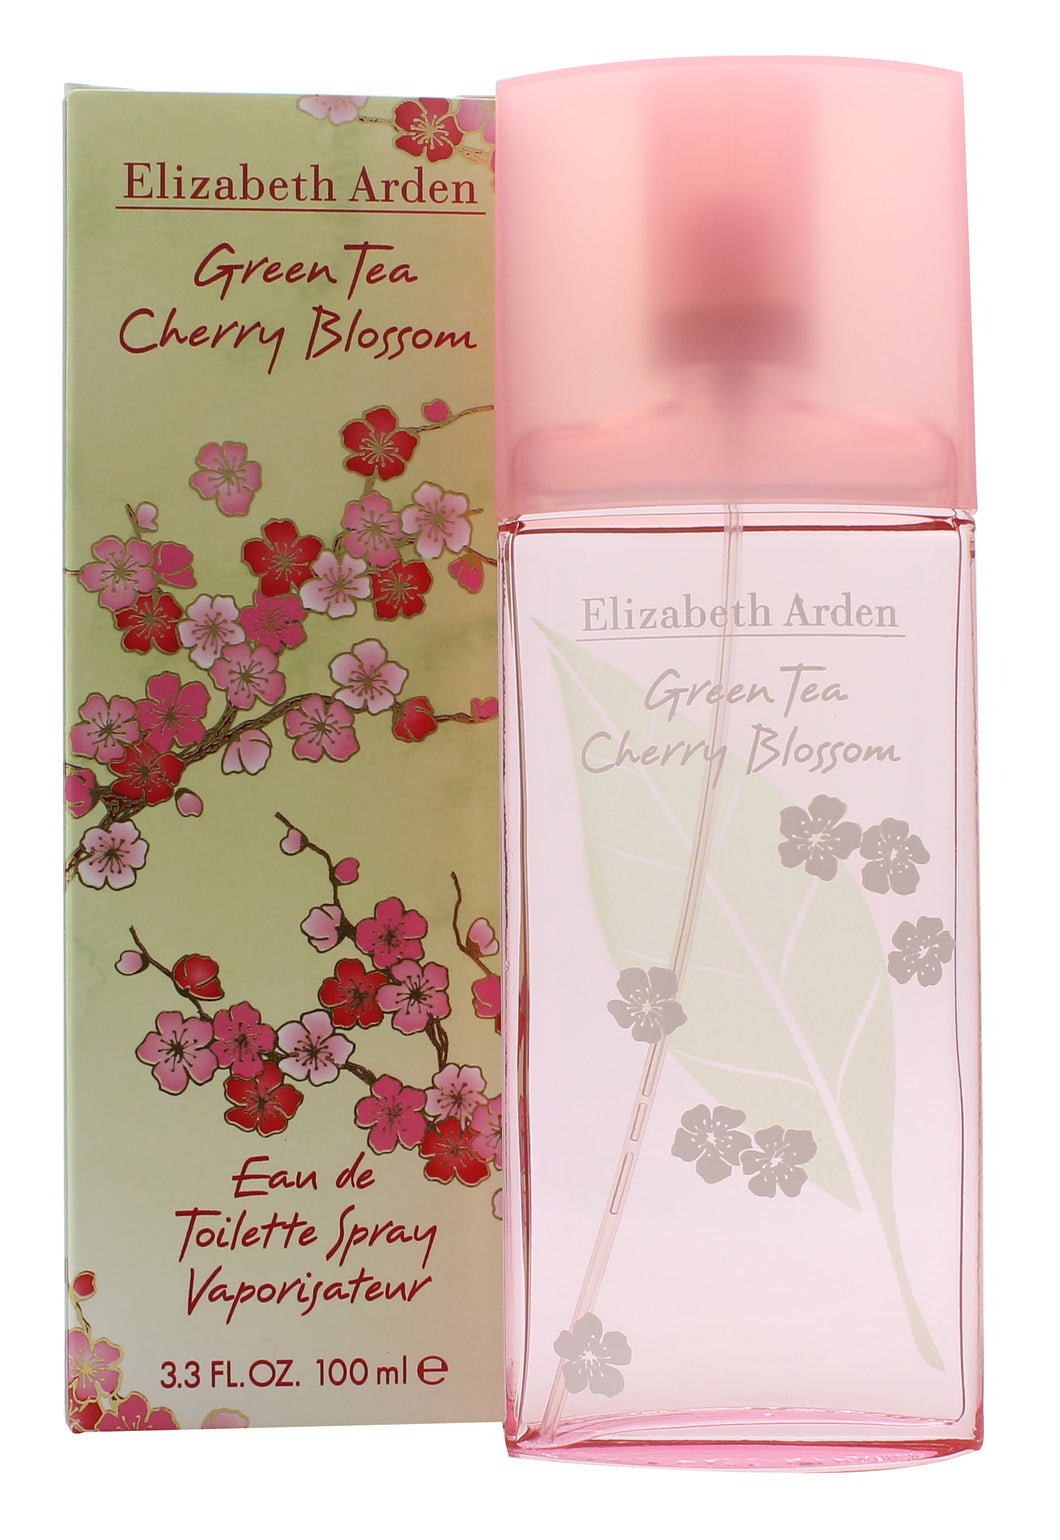 Elizabeth Arden Green Tea Cherry Blossom Eau de Toilette 100ml Spray